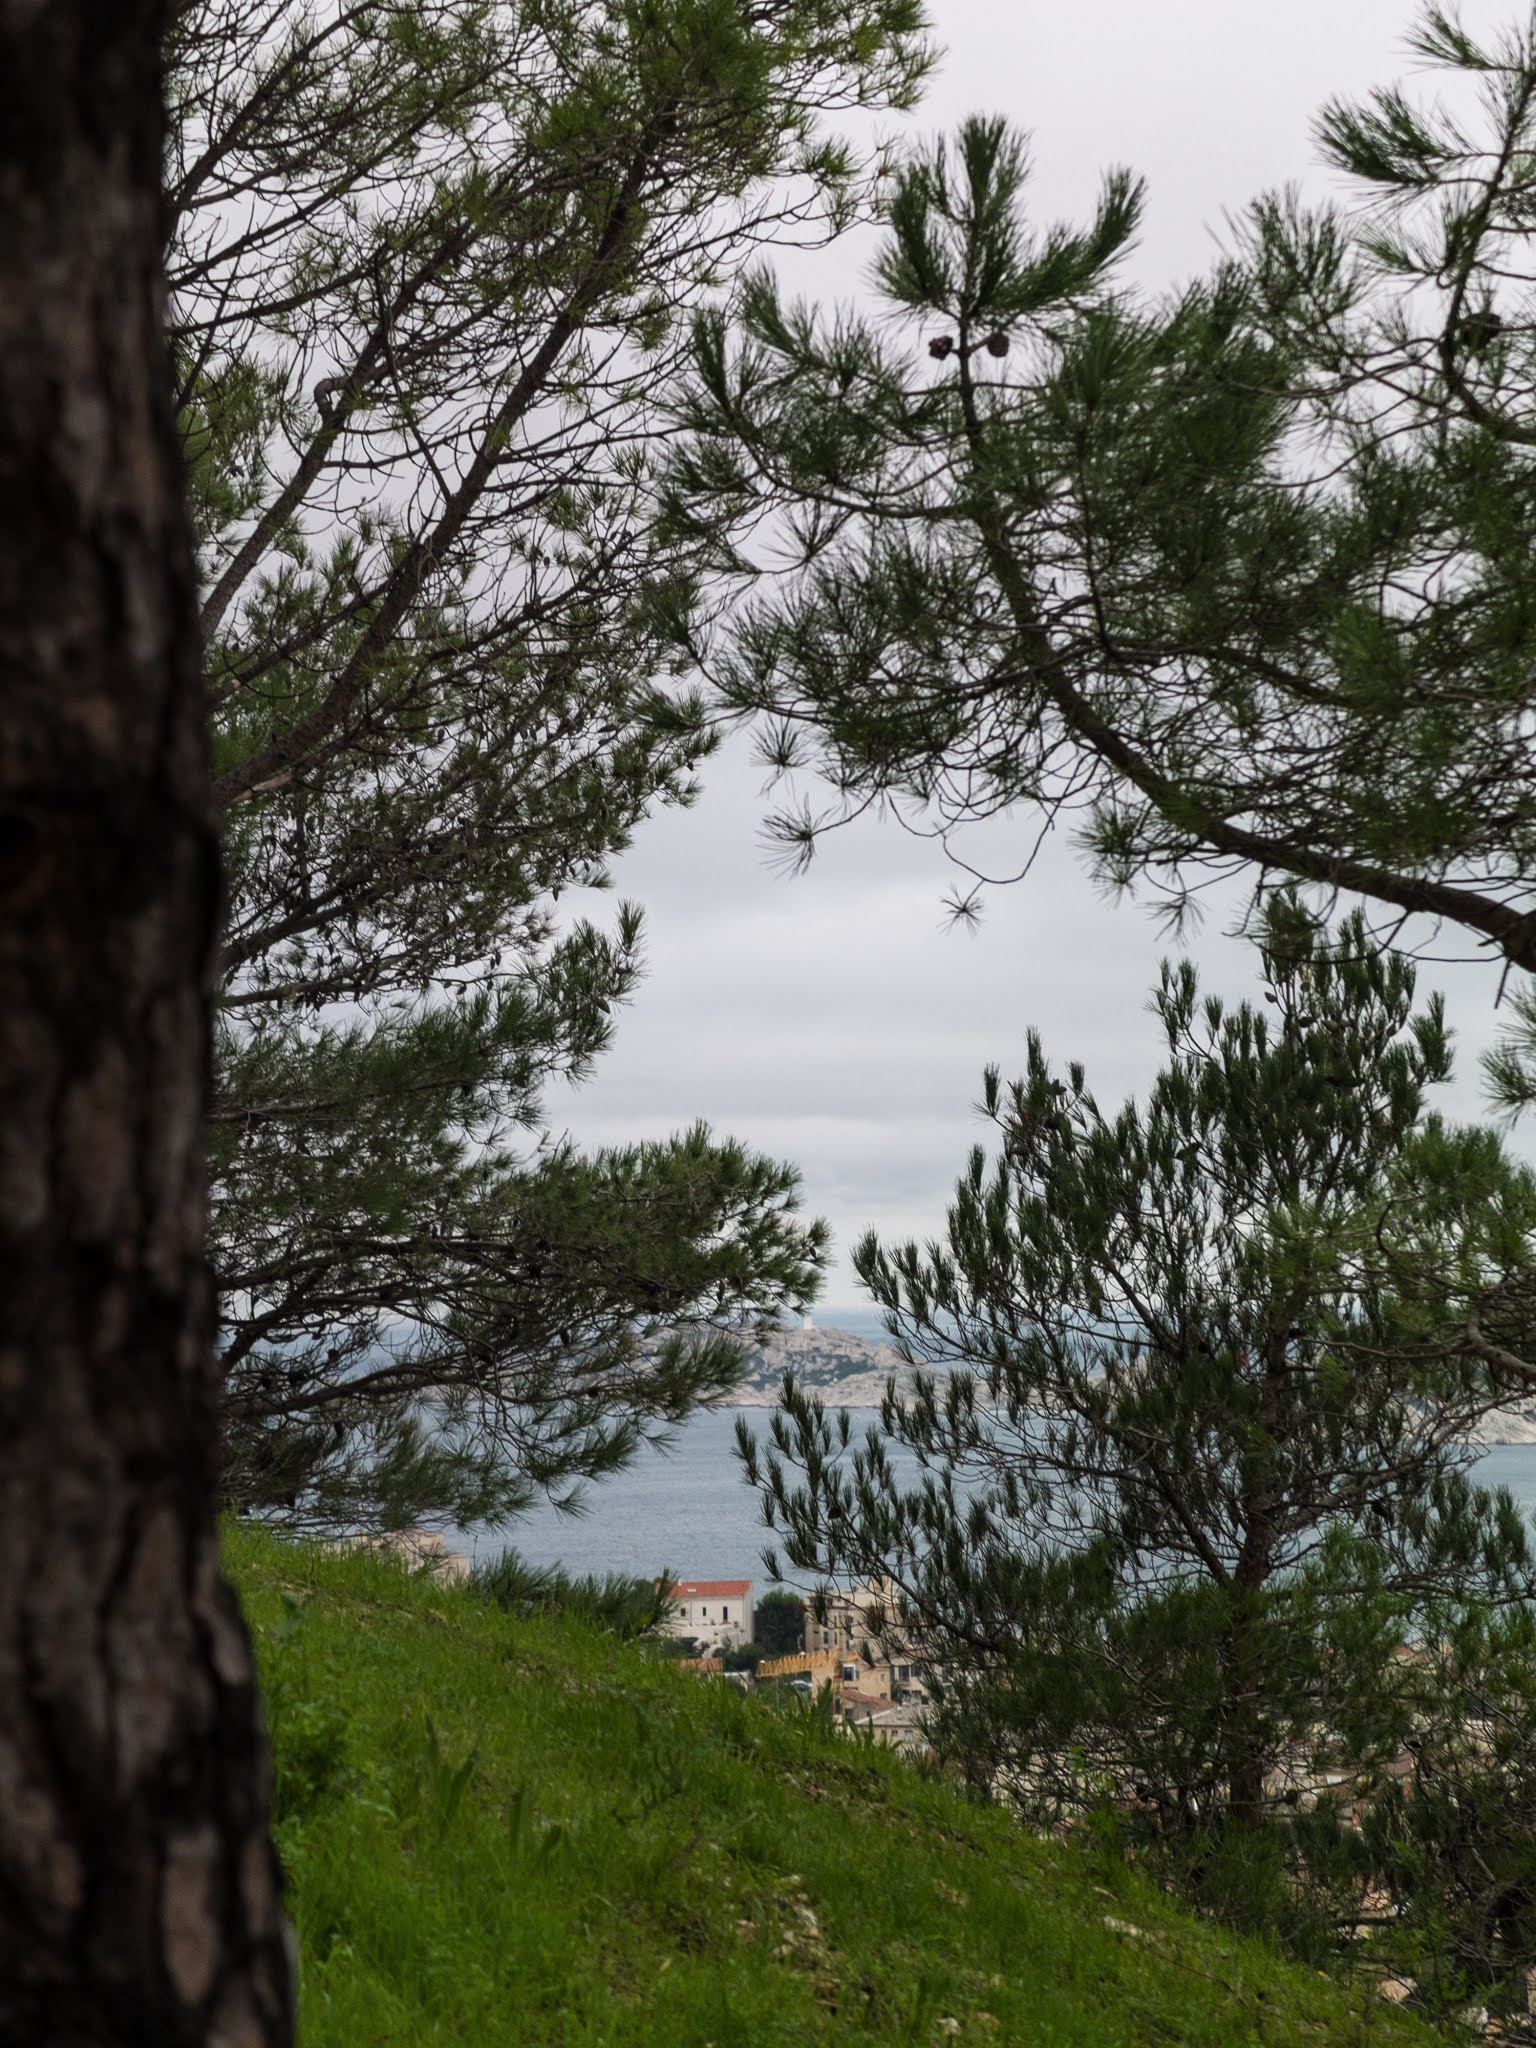 Pine trees and branches on La Garde hill in Marseille.